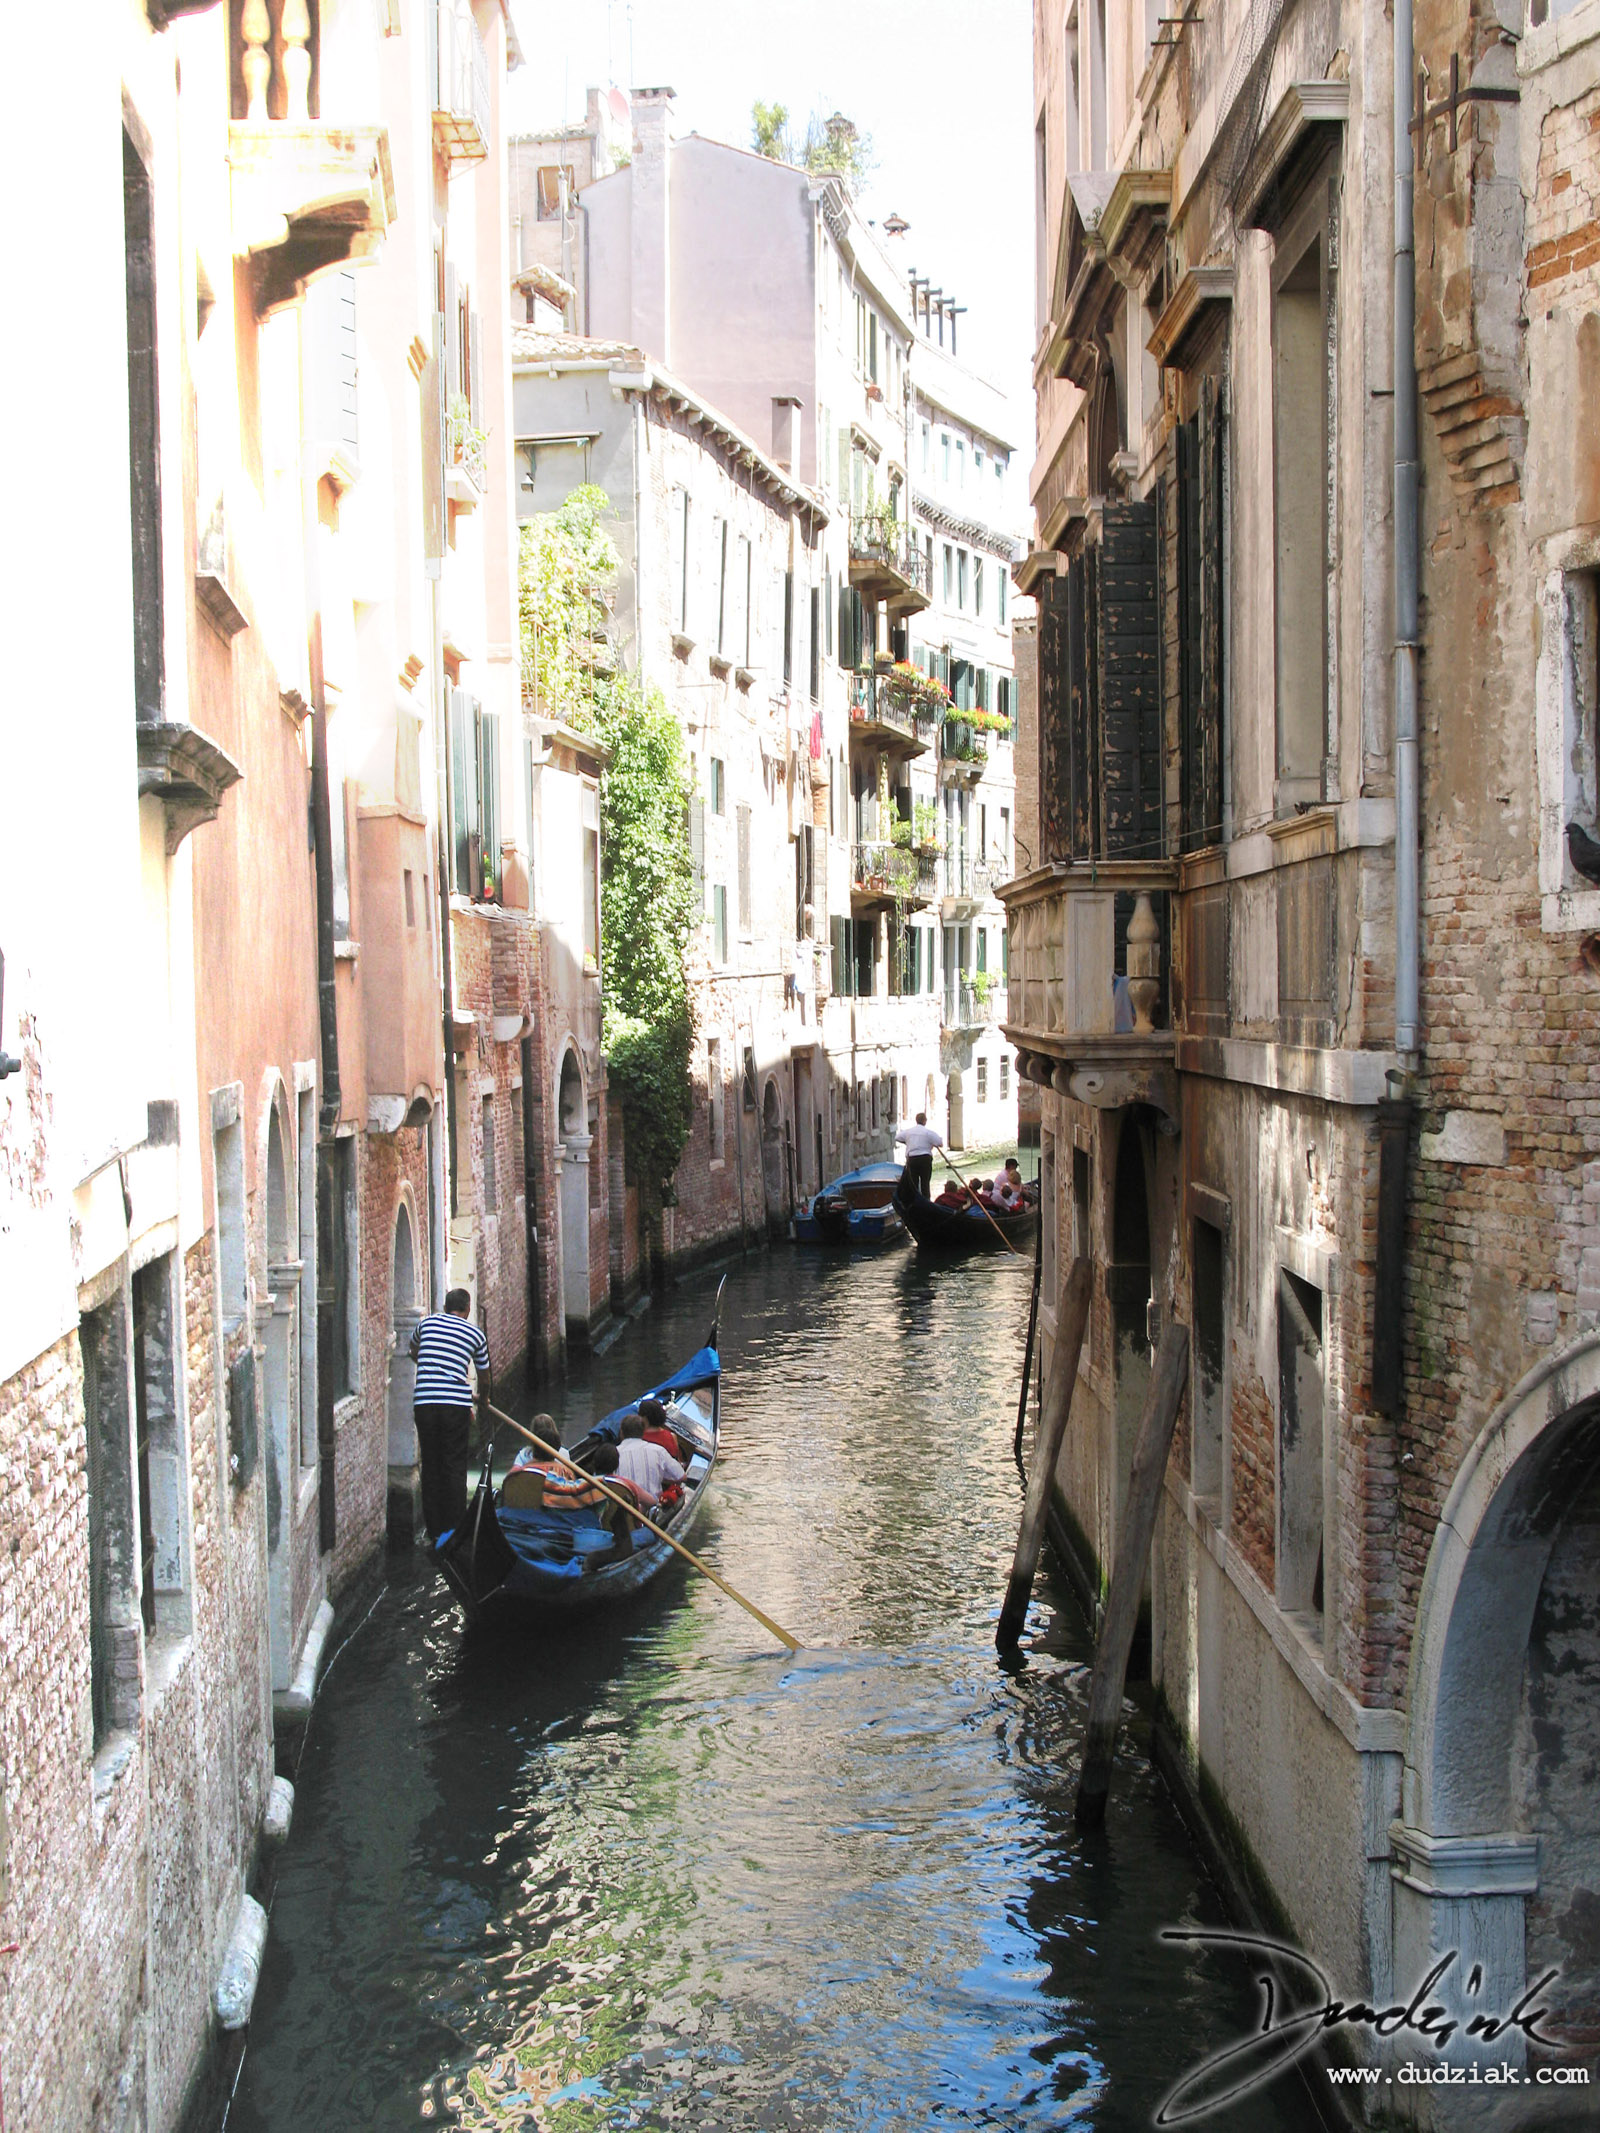 Picture of gondoliers on the Venetian canal Rio di Santa Maria Formosa facing North in Venice, Italy.<br><br>[Lat, Long]:[45.43685772149039, 12.3416268825531]